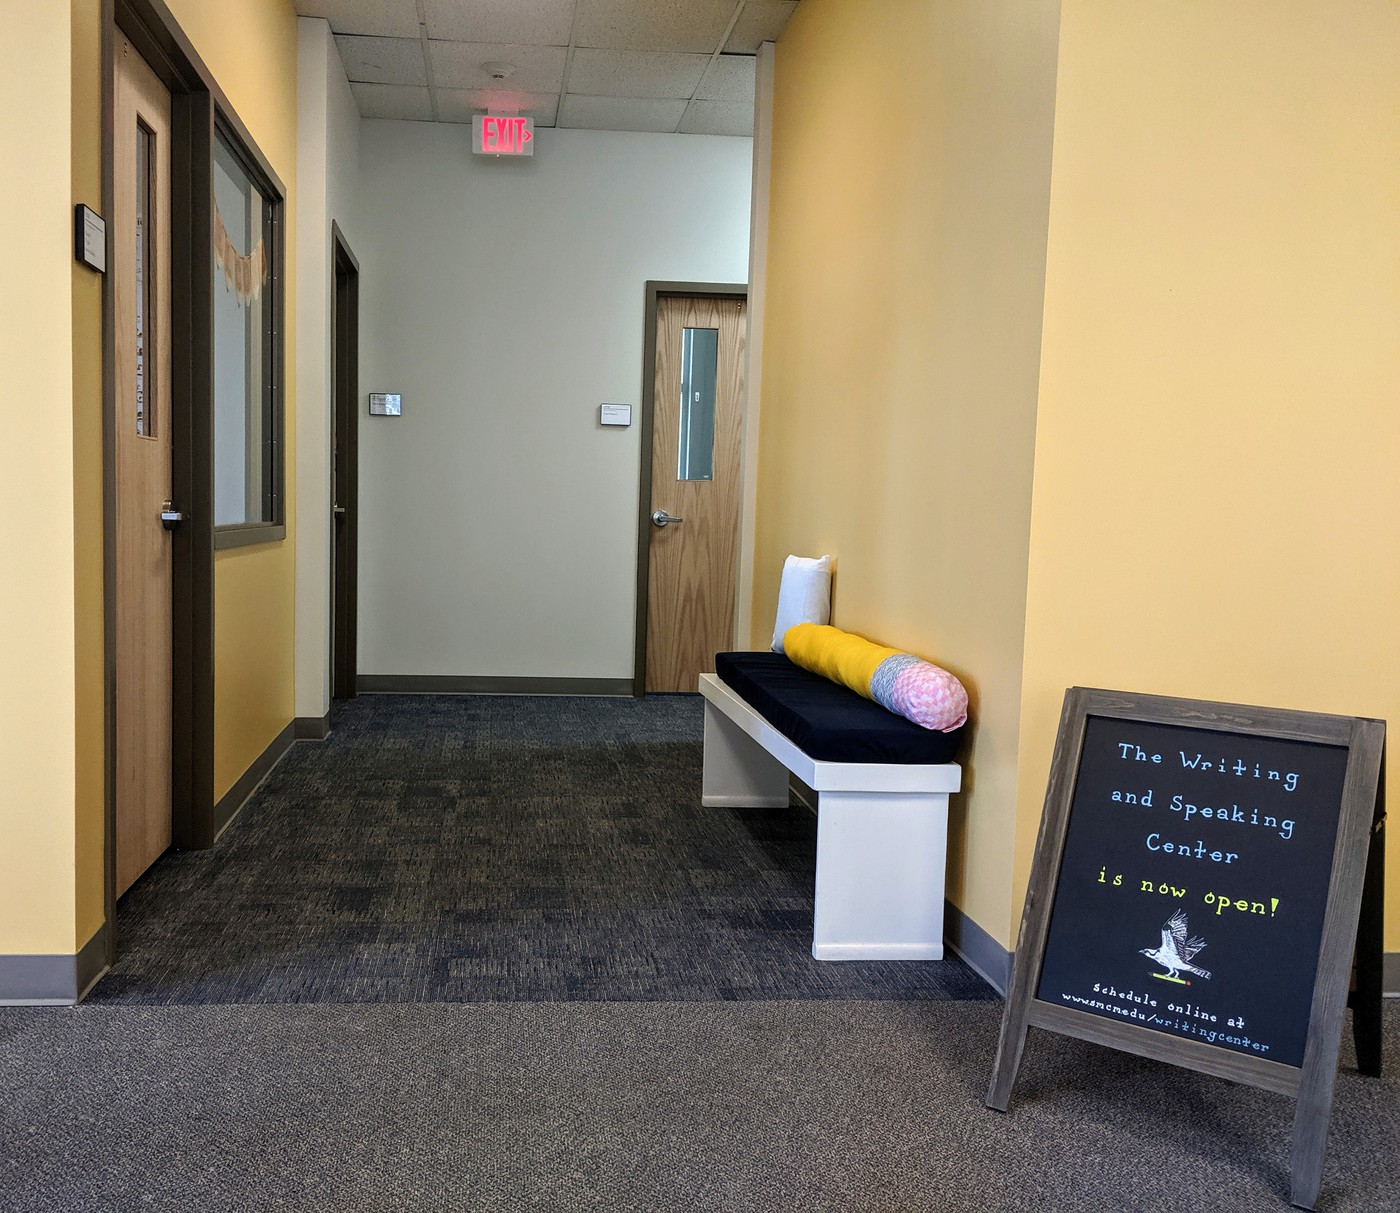 Picture of the entrance to the new Center. There is a white bench, temporary sign, and pale yellow walls.